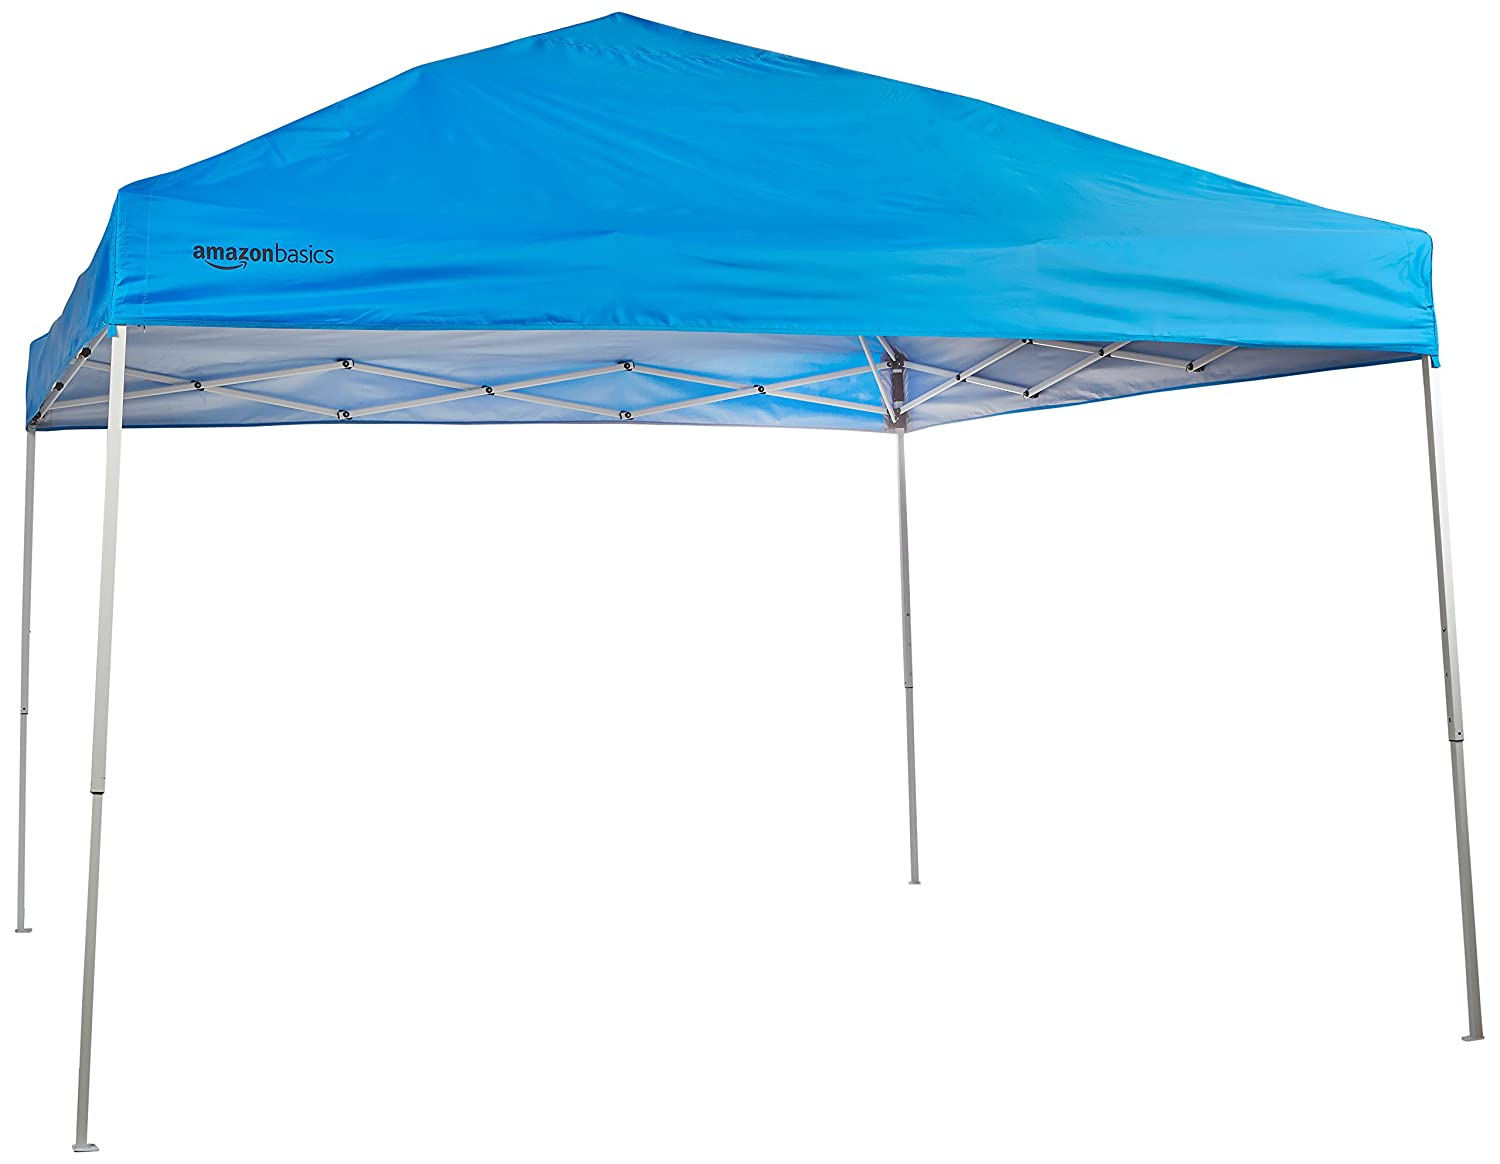 AmazonBasics Pop-Up Canopy Tent - 10